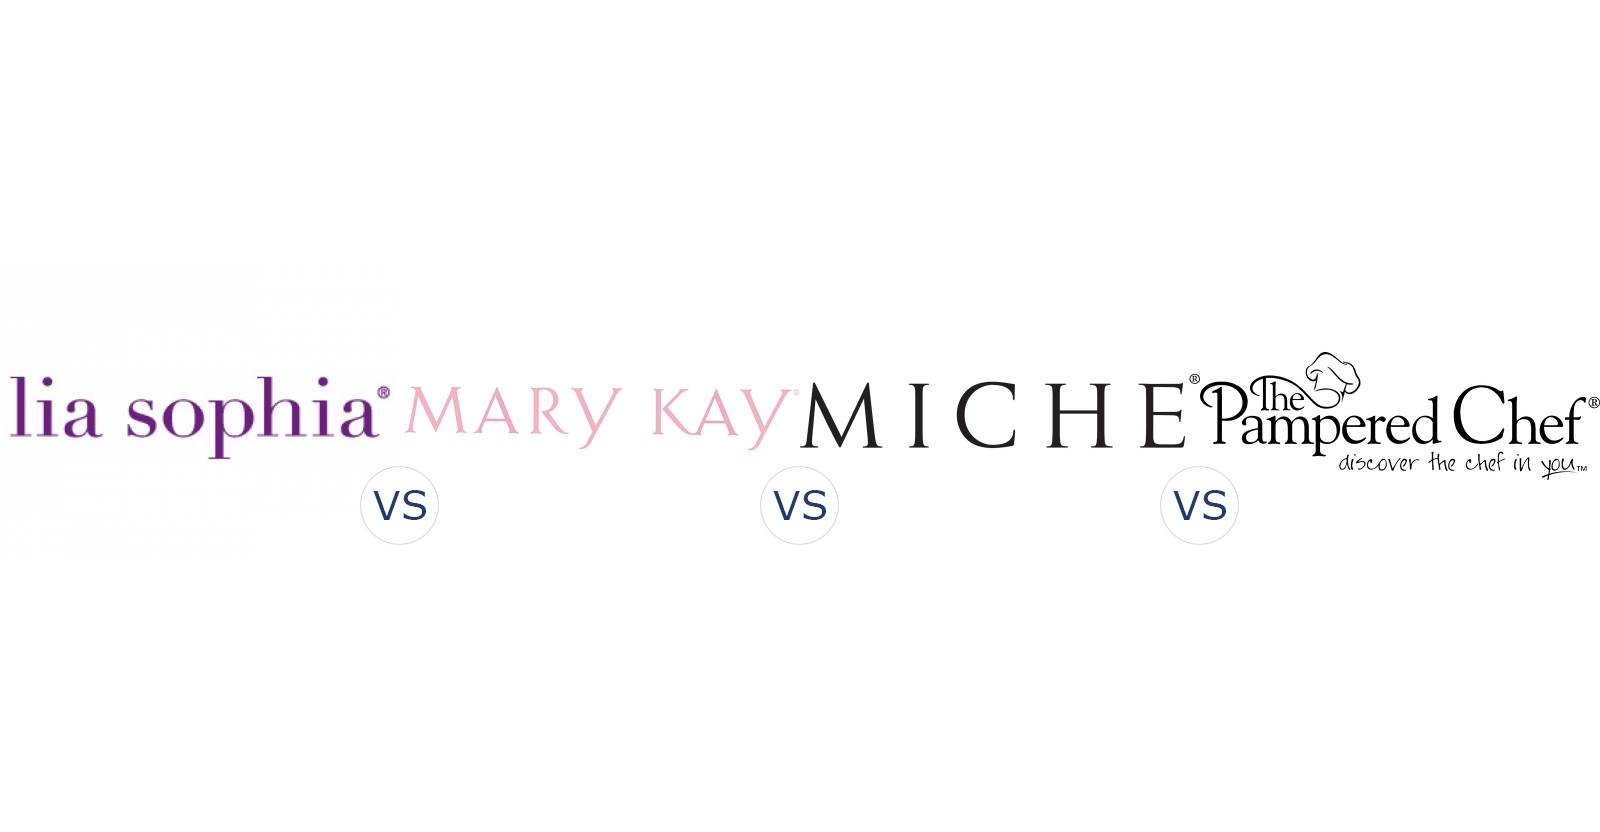 Lia Sophia Vs Mary Kay Vs Miche Bag Vs Pampered Chef Compare